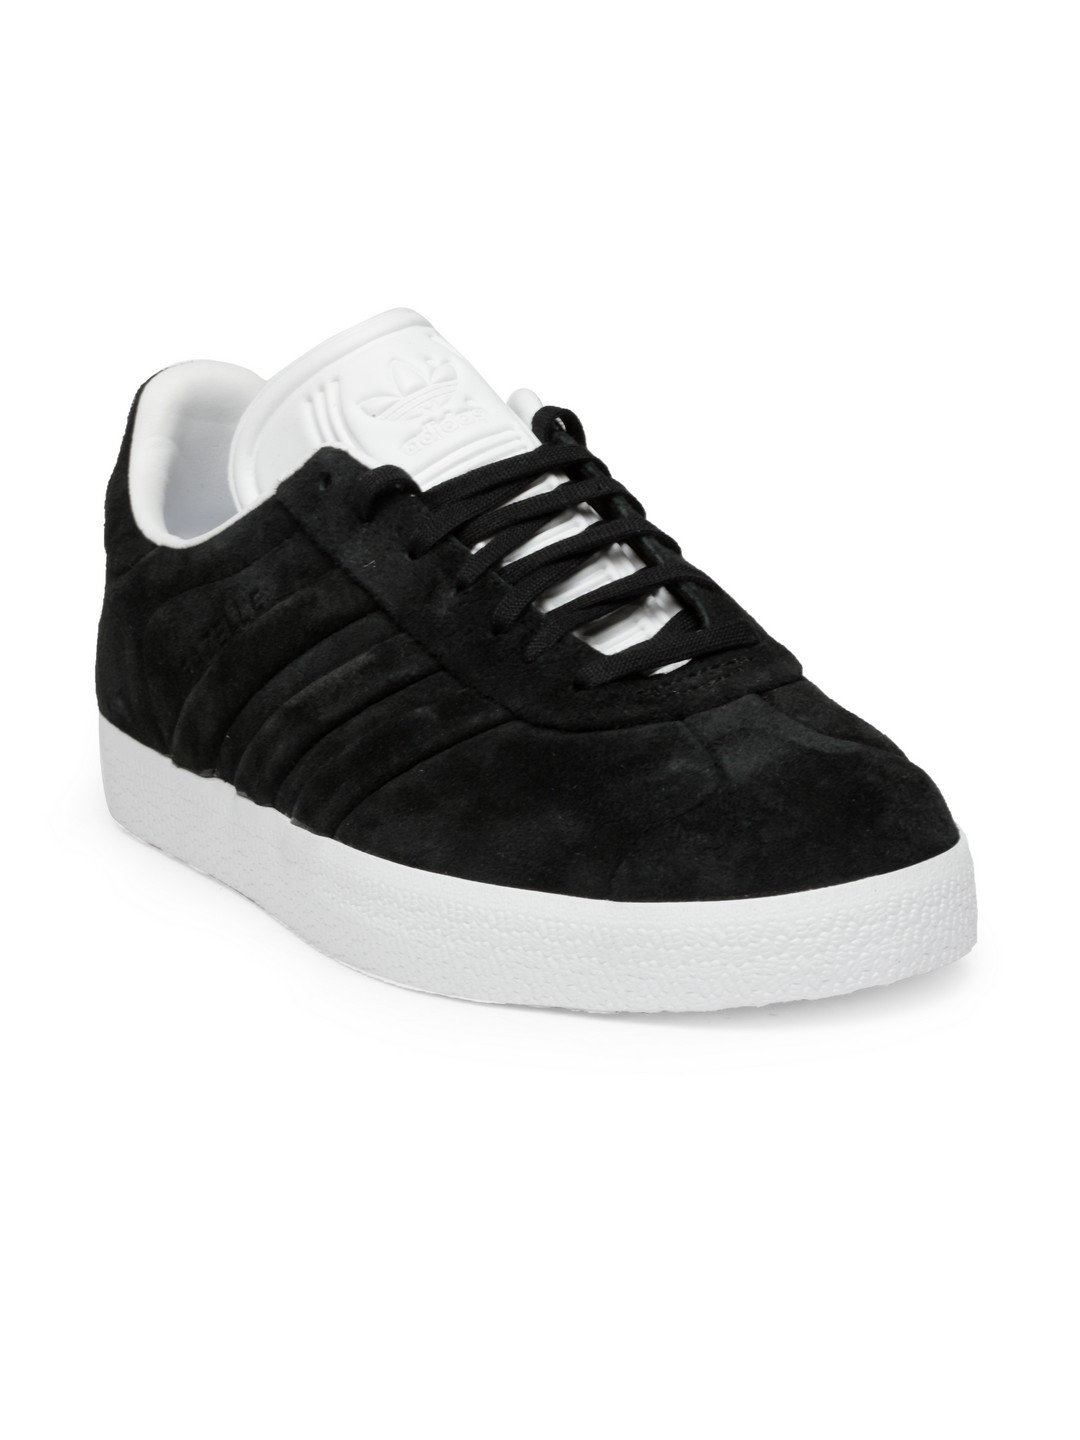 46da1015e31 Buy ADIDAS Originals Men Black Gazelle Stitch & Turn Suede Sneakers ...